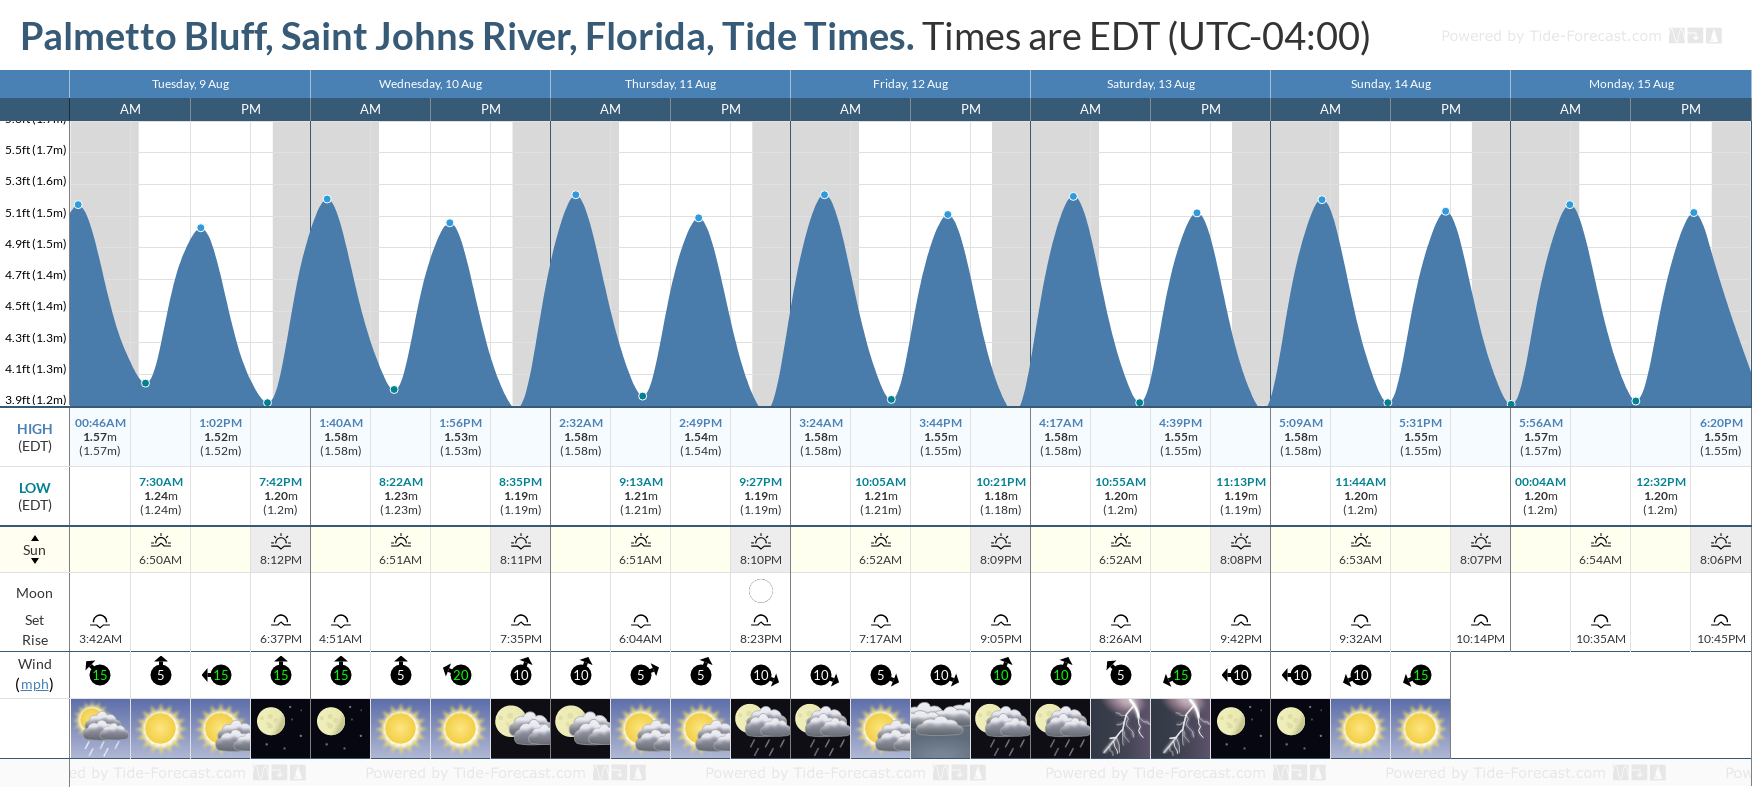 Palmetto Bluff, Saint Johns River, Florida Tide Chart including high and low tide tide times for the next 7 days